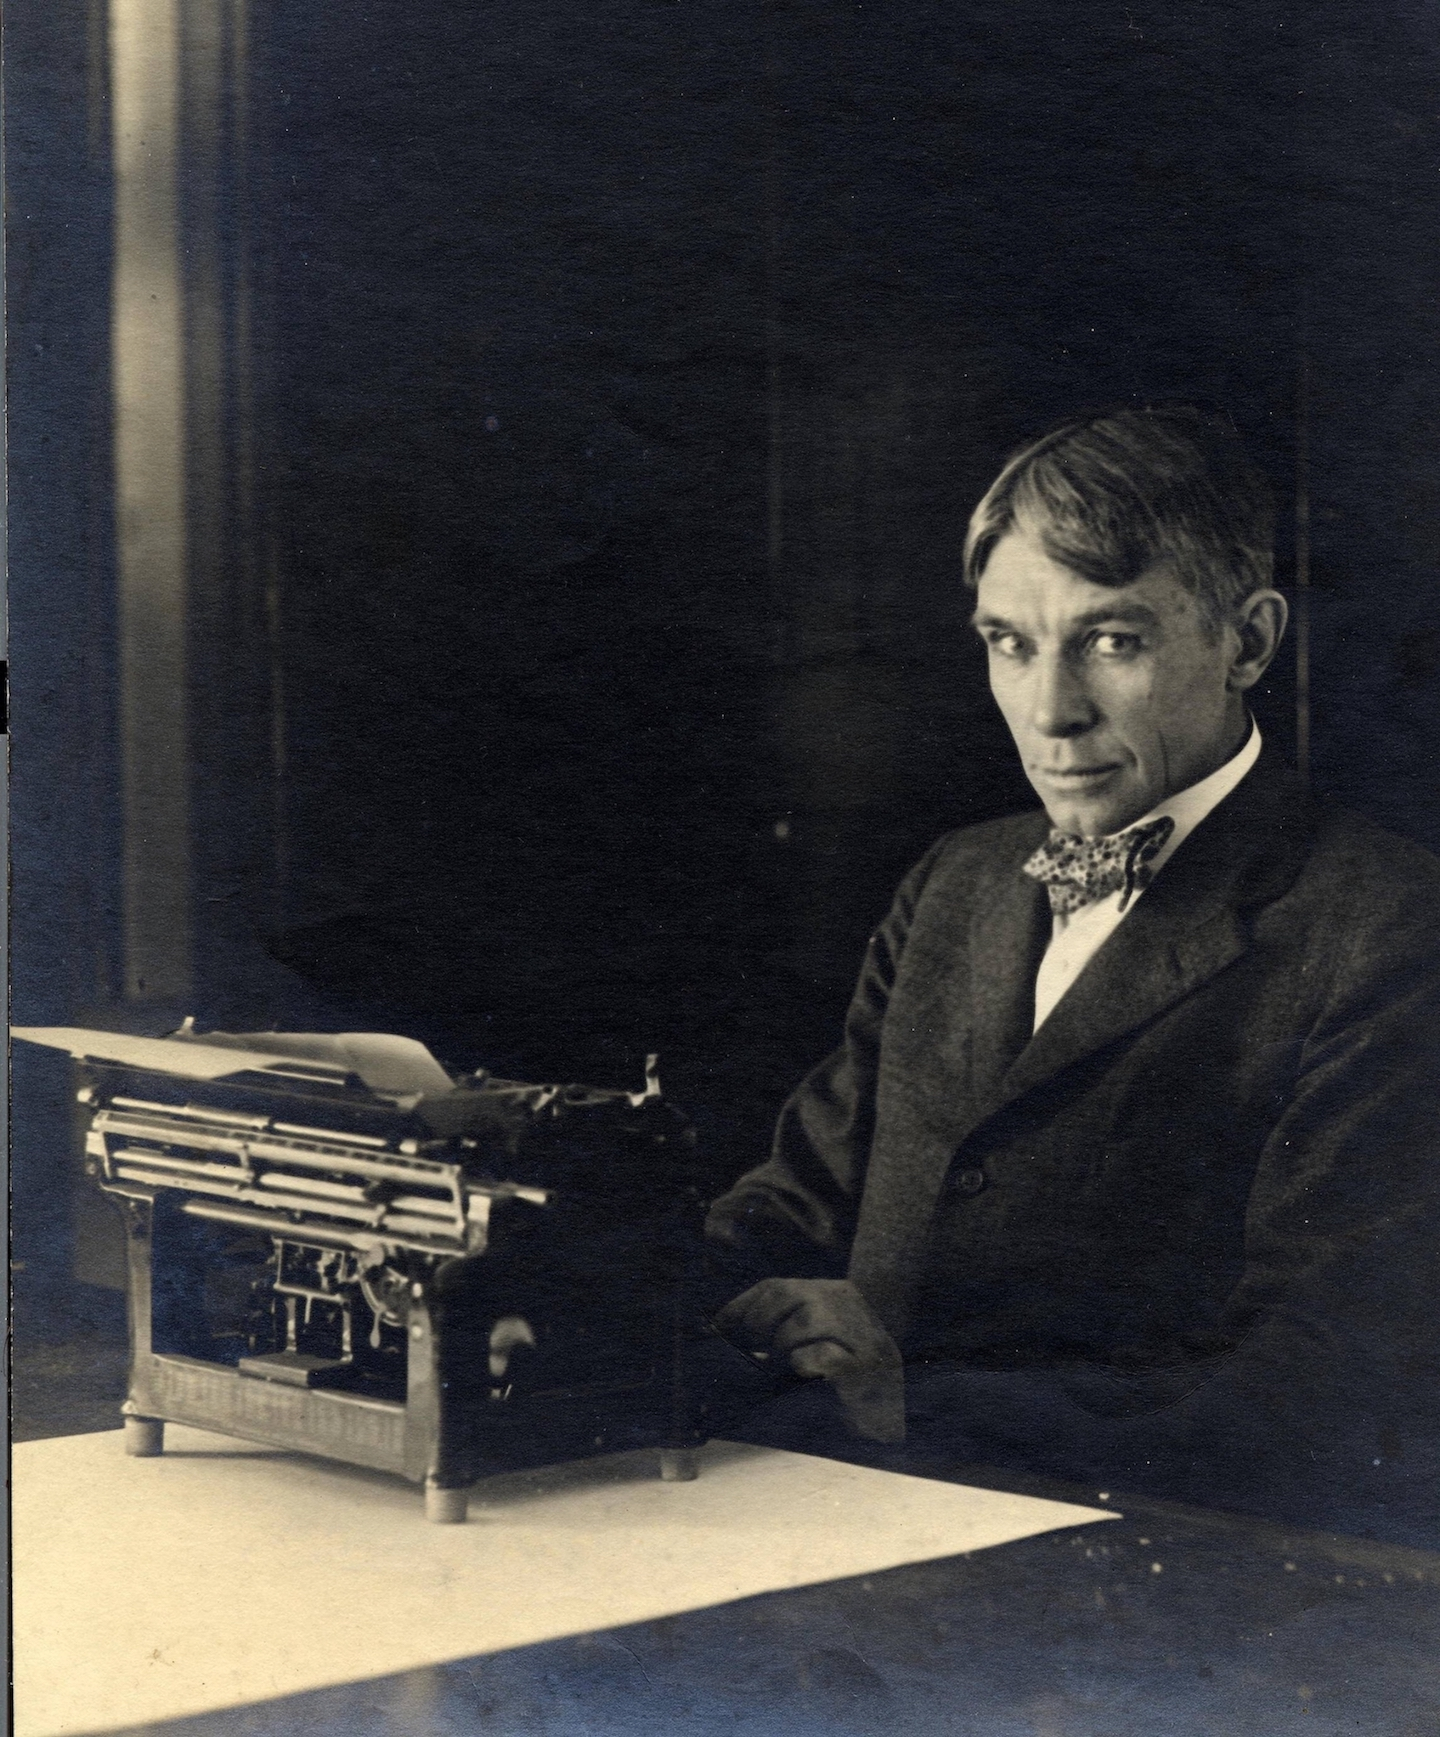 <table class=&quot;lightbox&quot;><tr><td colspan=2 class=&quot;lightbox-title&quot;>Carl Sandburg 1878-1967</td></tr><tr><td colspan=2 class=&quot;lightbox-caption&quot;>Photograph of Carl Sandburg sitting with his typewriter at his home in Illinois, circa 1917-1918.</td></tr><tr><td colspan=2 class=&quot;lightbox-spacer&quot;></td></tr><tr class=&quot;lightbox-detail&quot;><td class=&quot;cell-title&quot;>Source: </td><td class=&quot;cell-value&quot;>From the National Park Service, Carl Sandburg Home National Historic Site.<br /><a href=&quot;https://www.nps.gov/media/photo/gallery.htm?id=8AFD5D40-1DD8-B71C-078929D4992651E2&quot; target=&quot;_blank&quot;>National Park Service</a></td></tr><tr class=&quot;filler-row&quot;><td colspan=2>&nbsp;</td></tr></table>